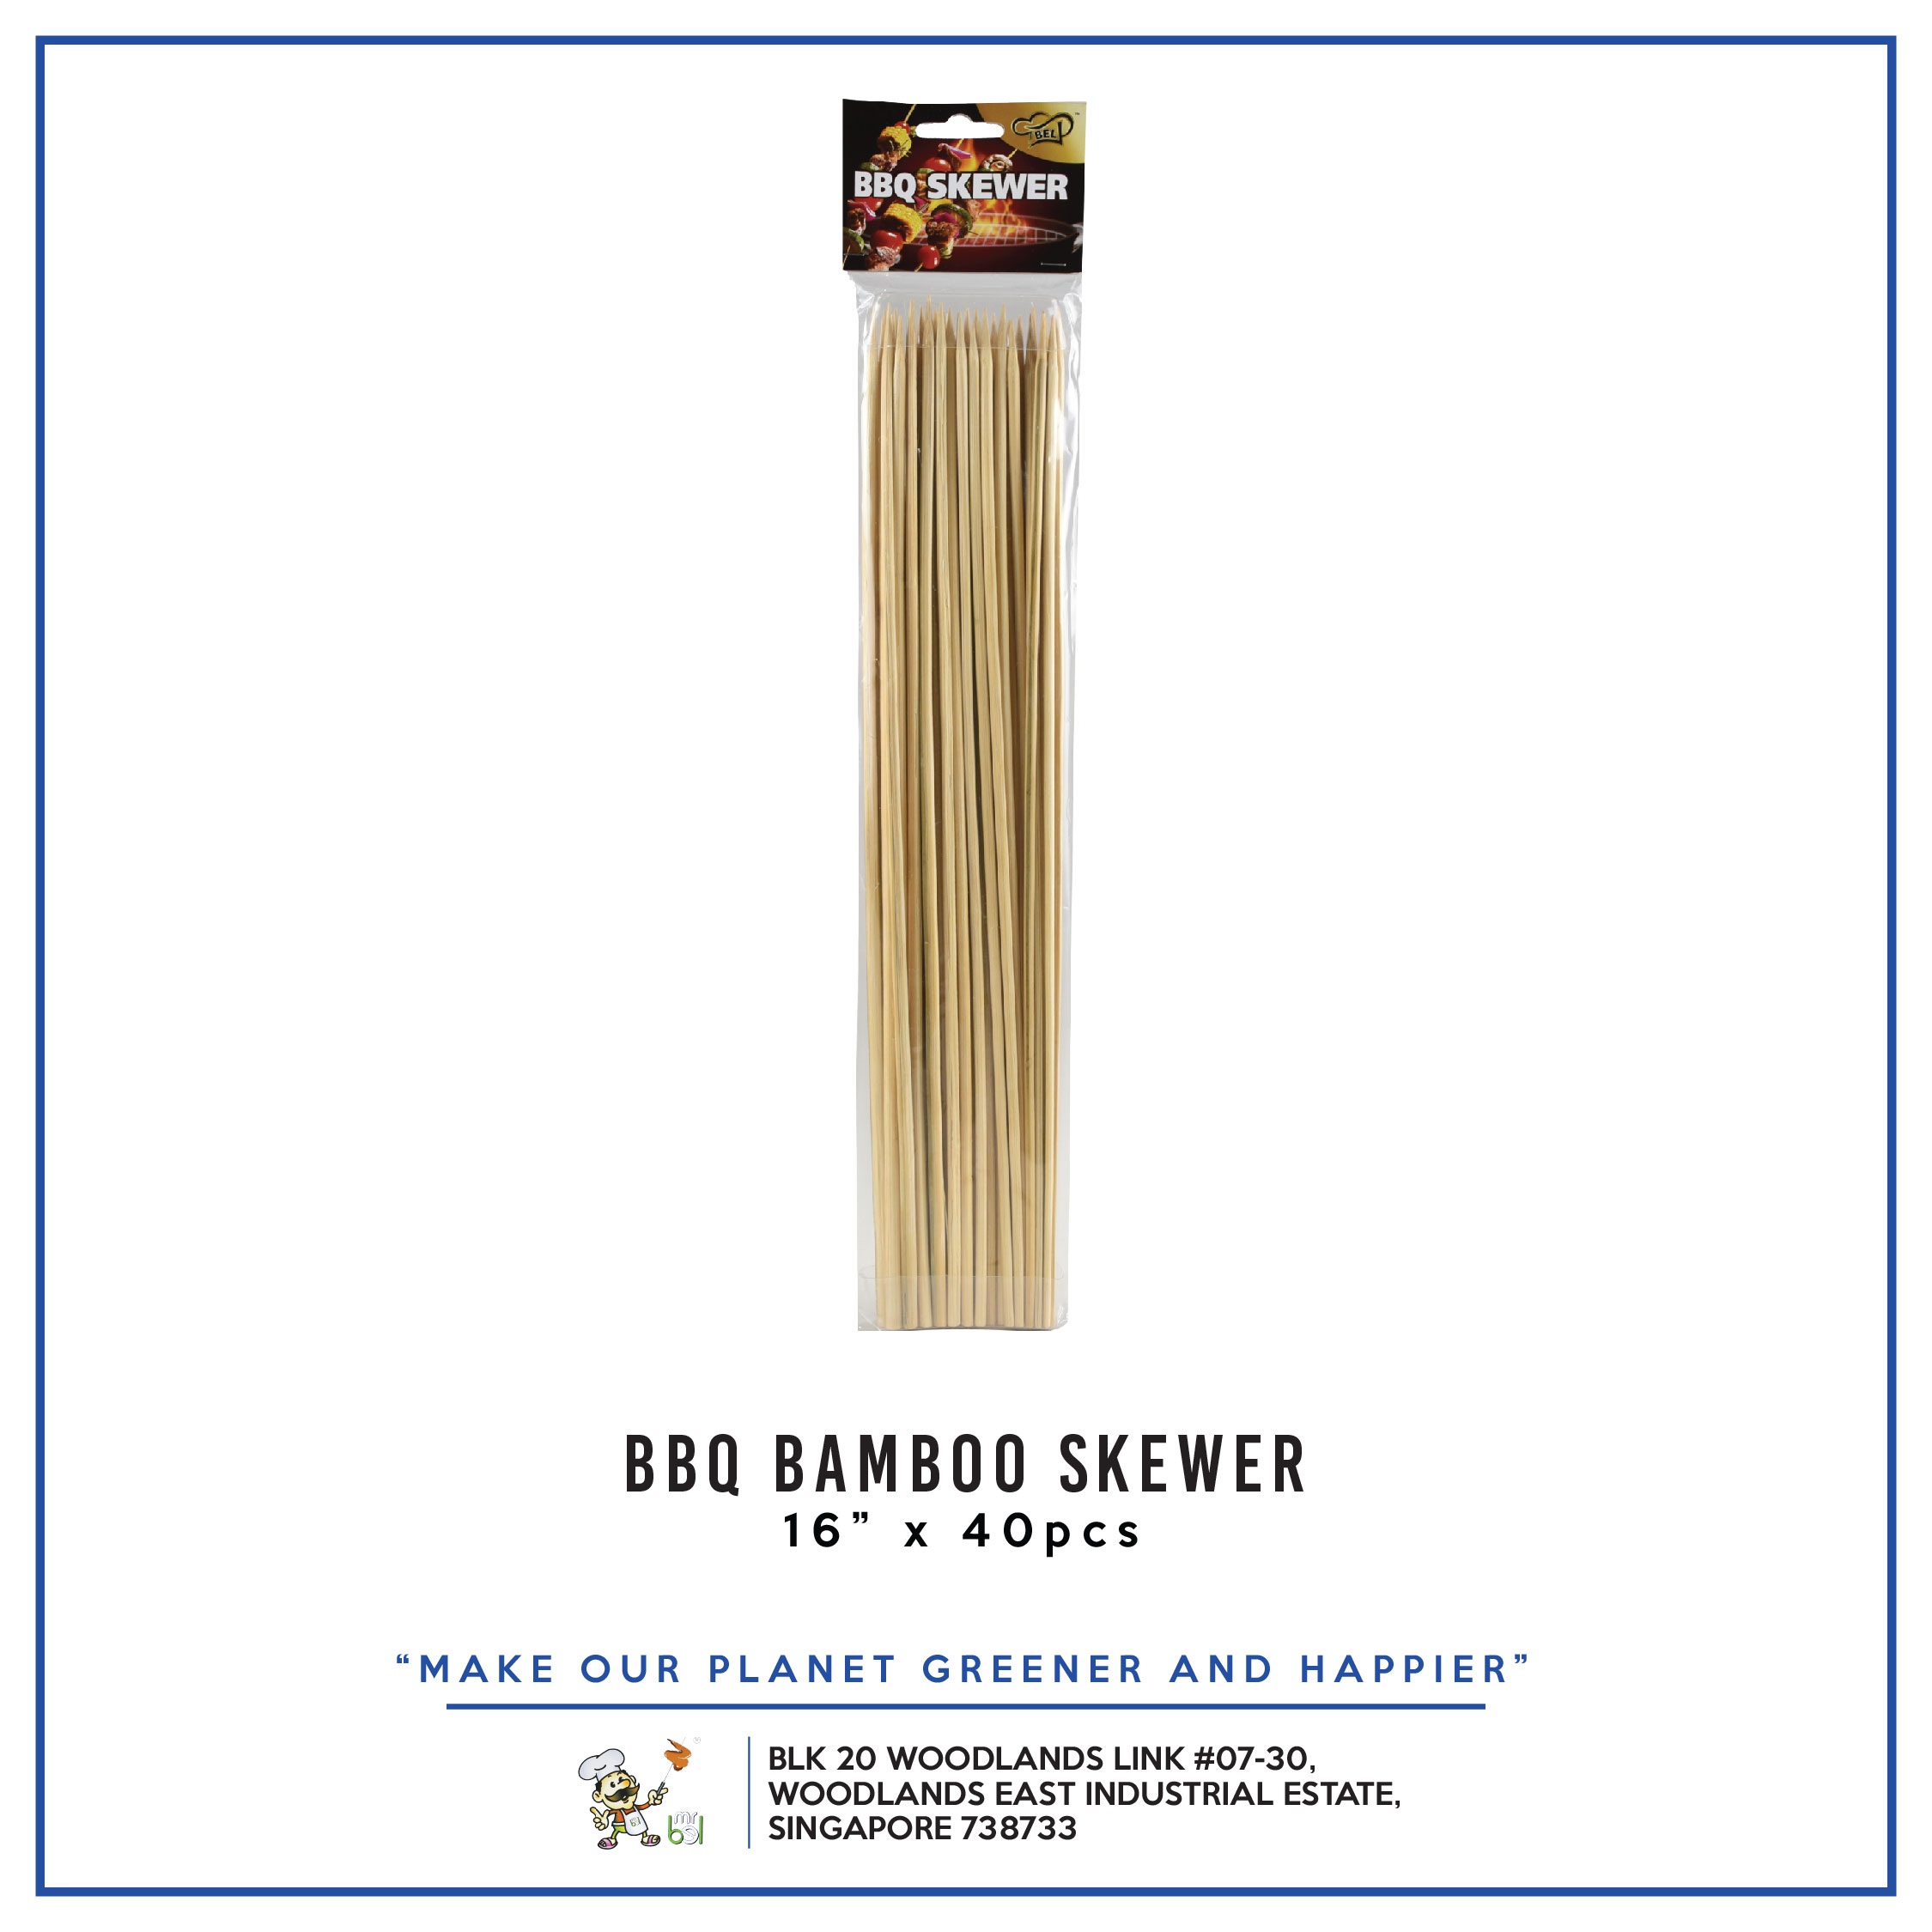 BBQ Bamboo Skewer 16  per pack - 1 Carton (24packs)